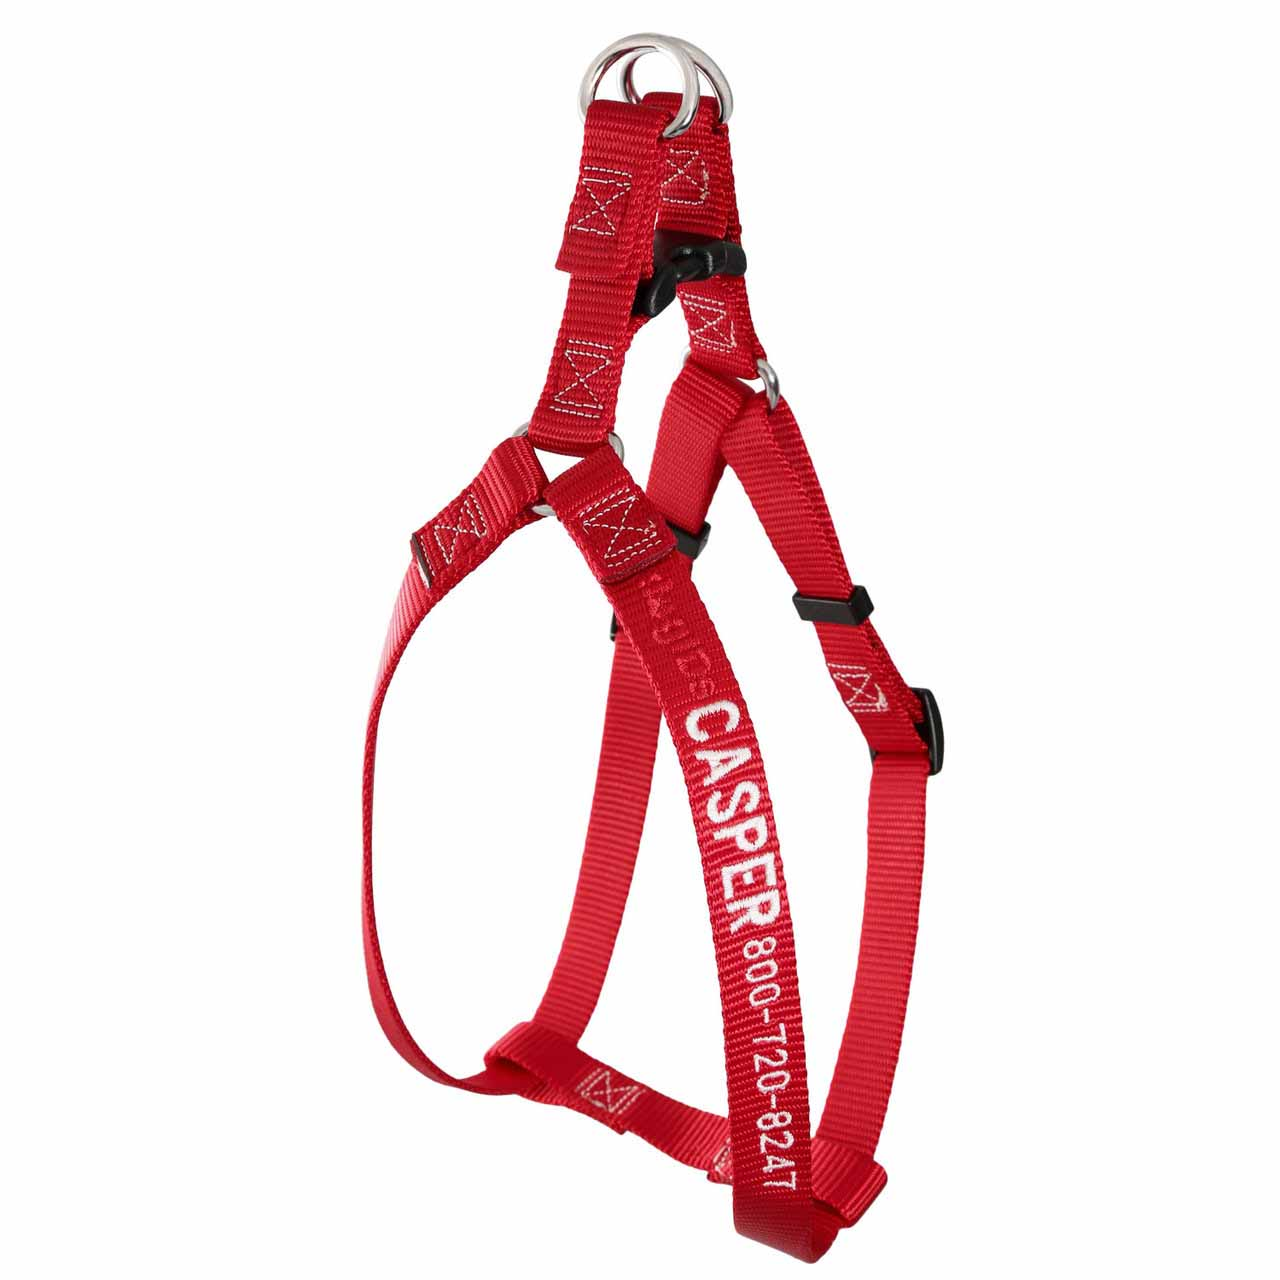 Embroidered Nylon Step-In Dog Harness Red